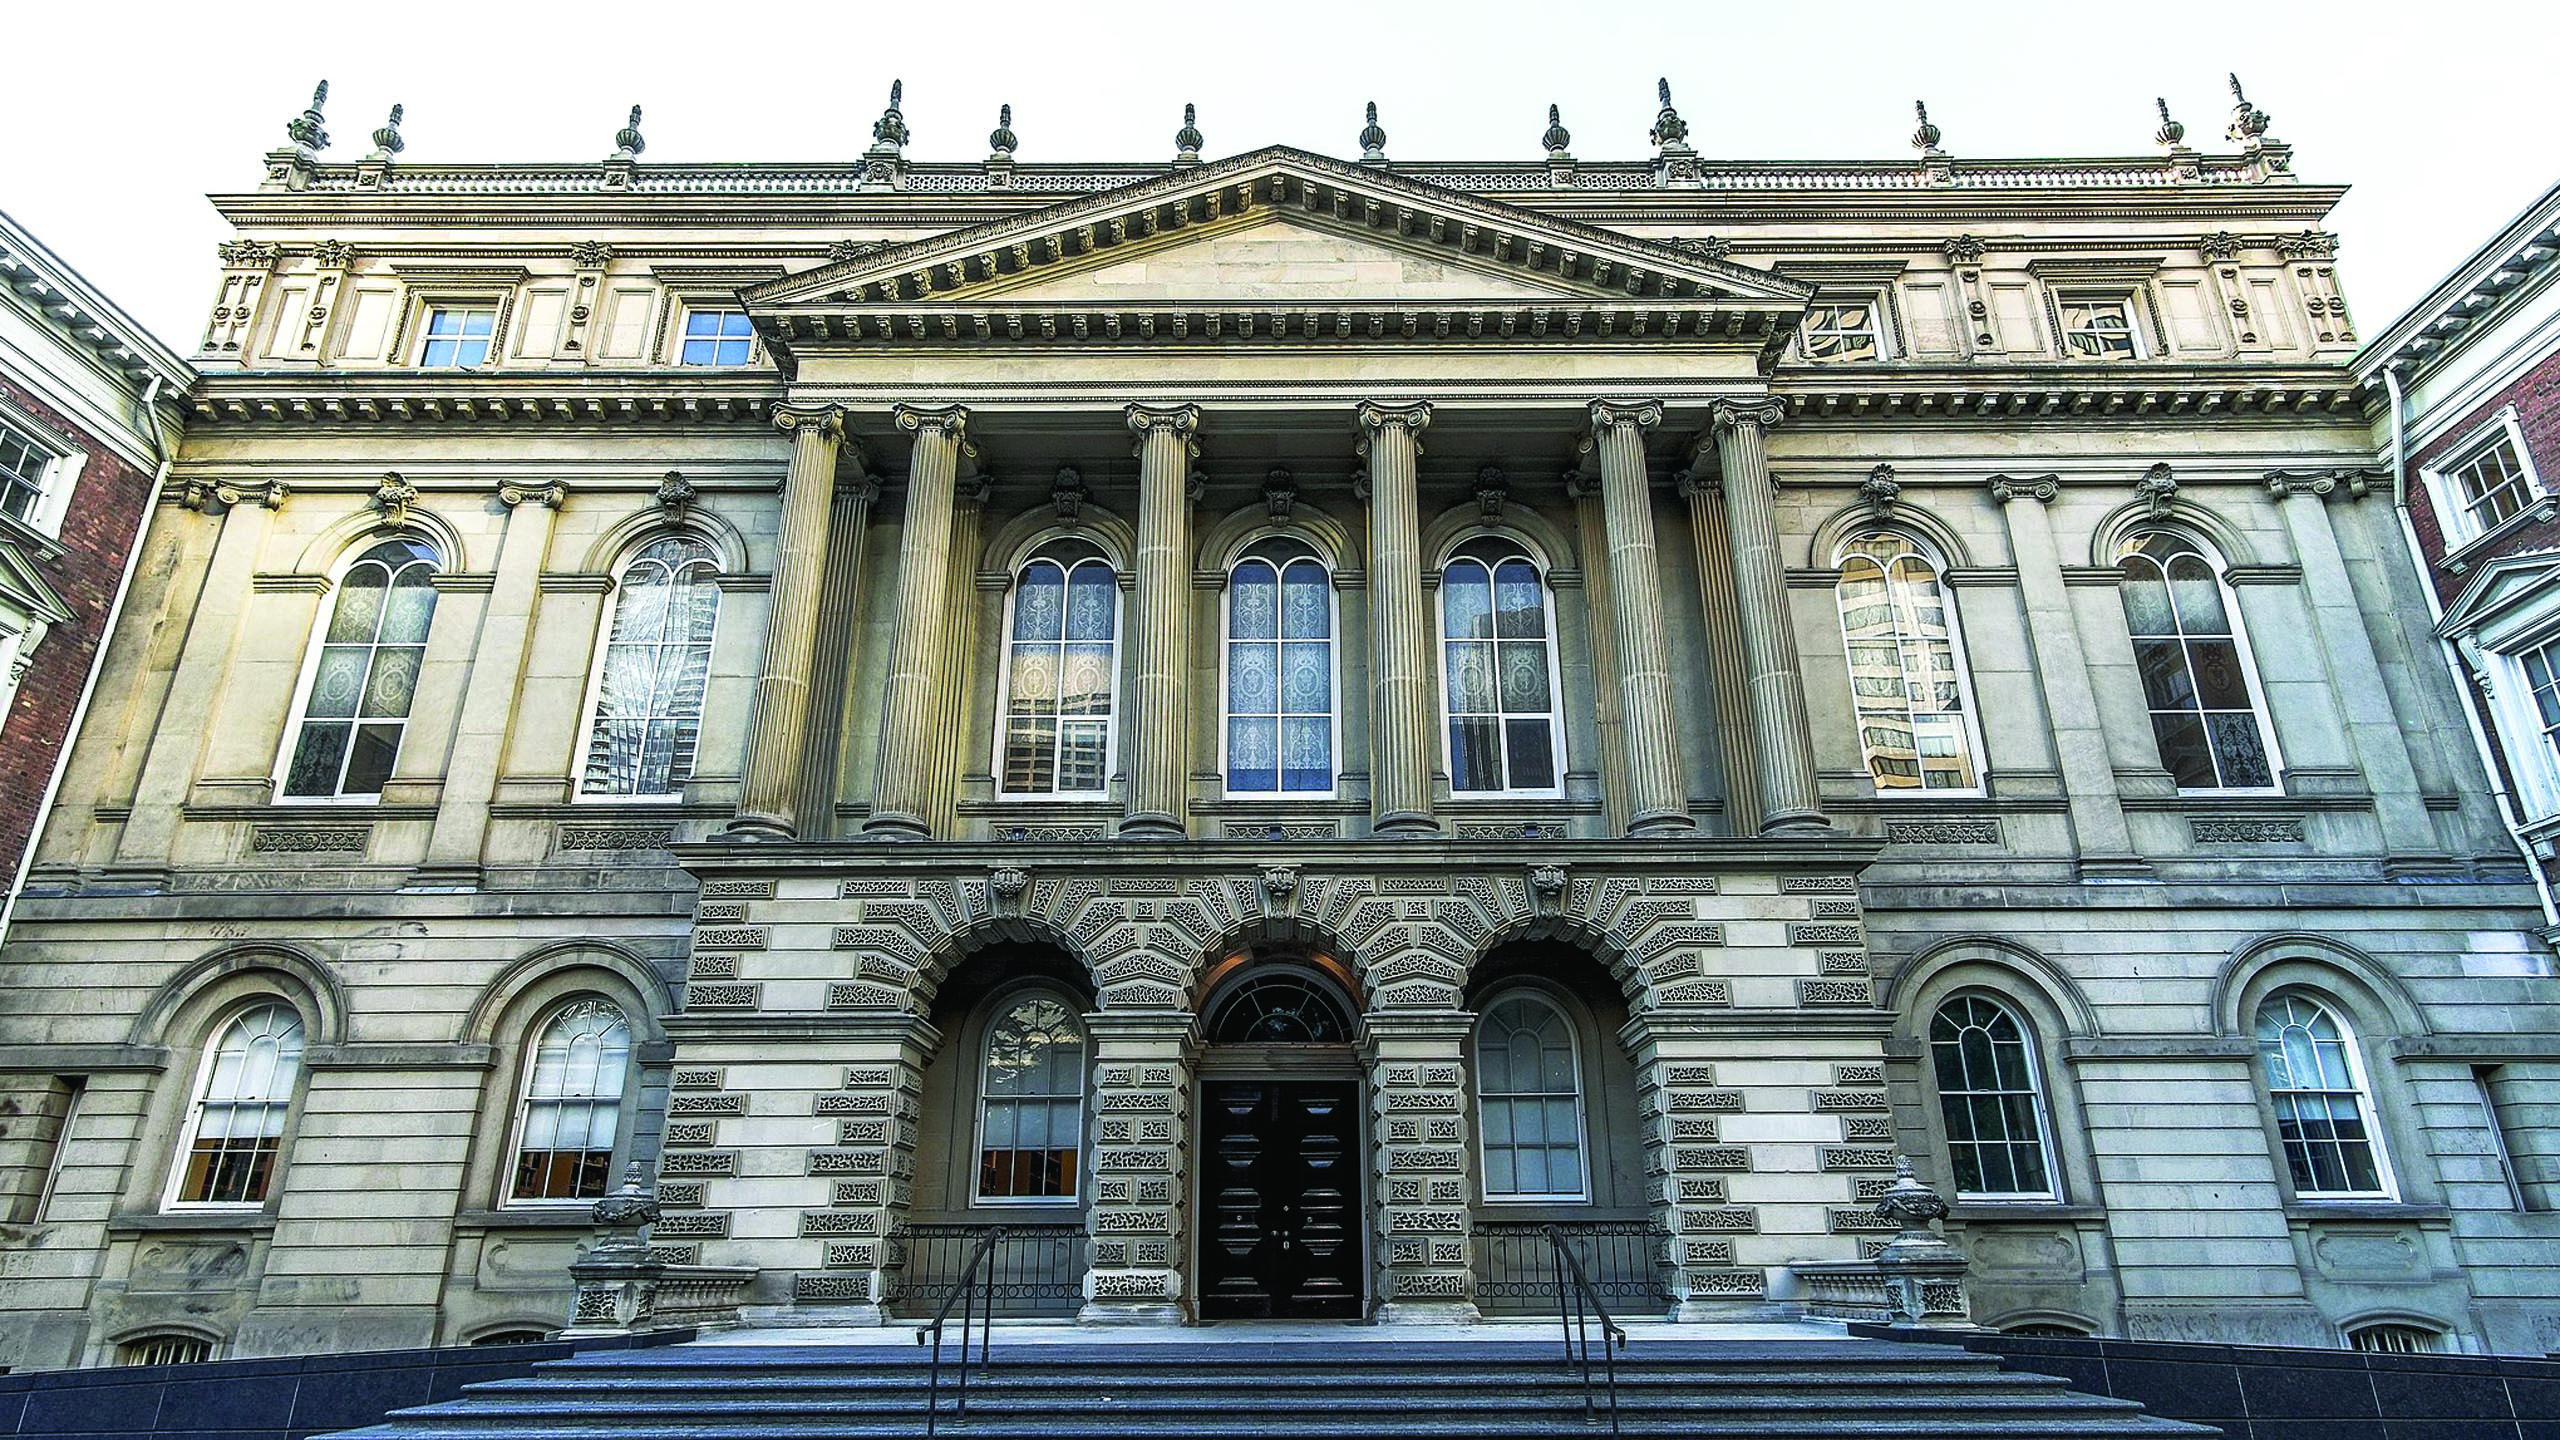 An image of Osgoode Hall in Toronto, a historic building design in the l late Palladian style. The building it two and a half stories, symmetrical and features stone pillars on the second story. The windows are tall with semi circles at the top. There are three stone arches at the entrance and pointy spires at the top of the building.